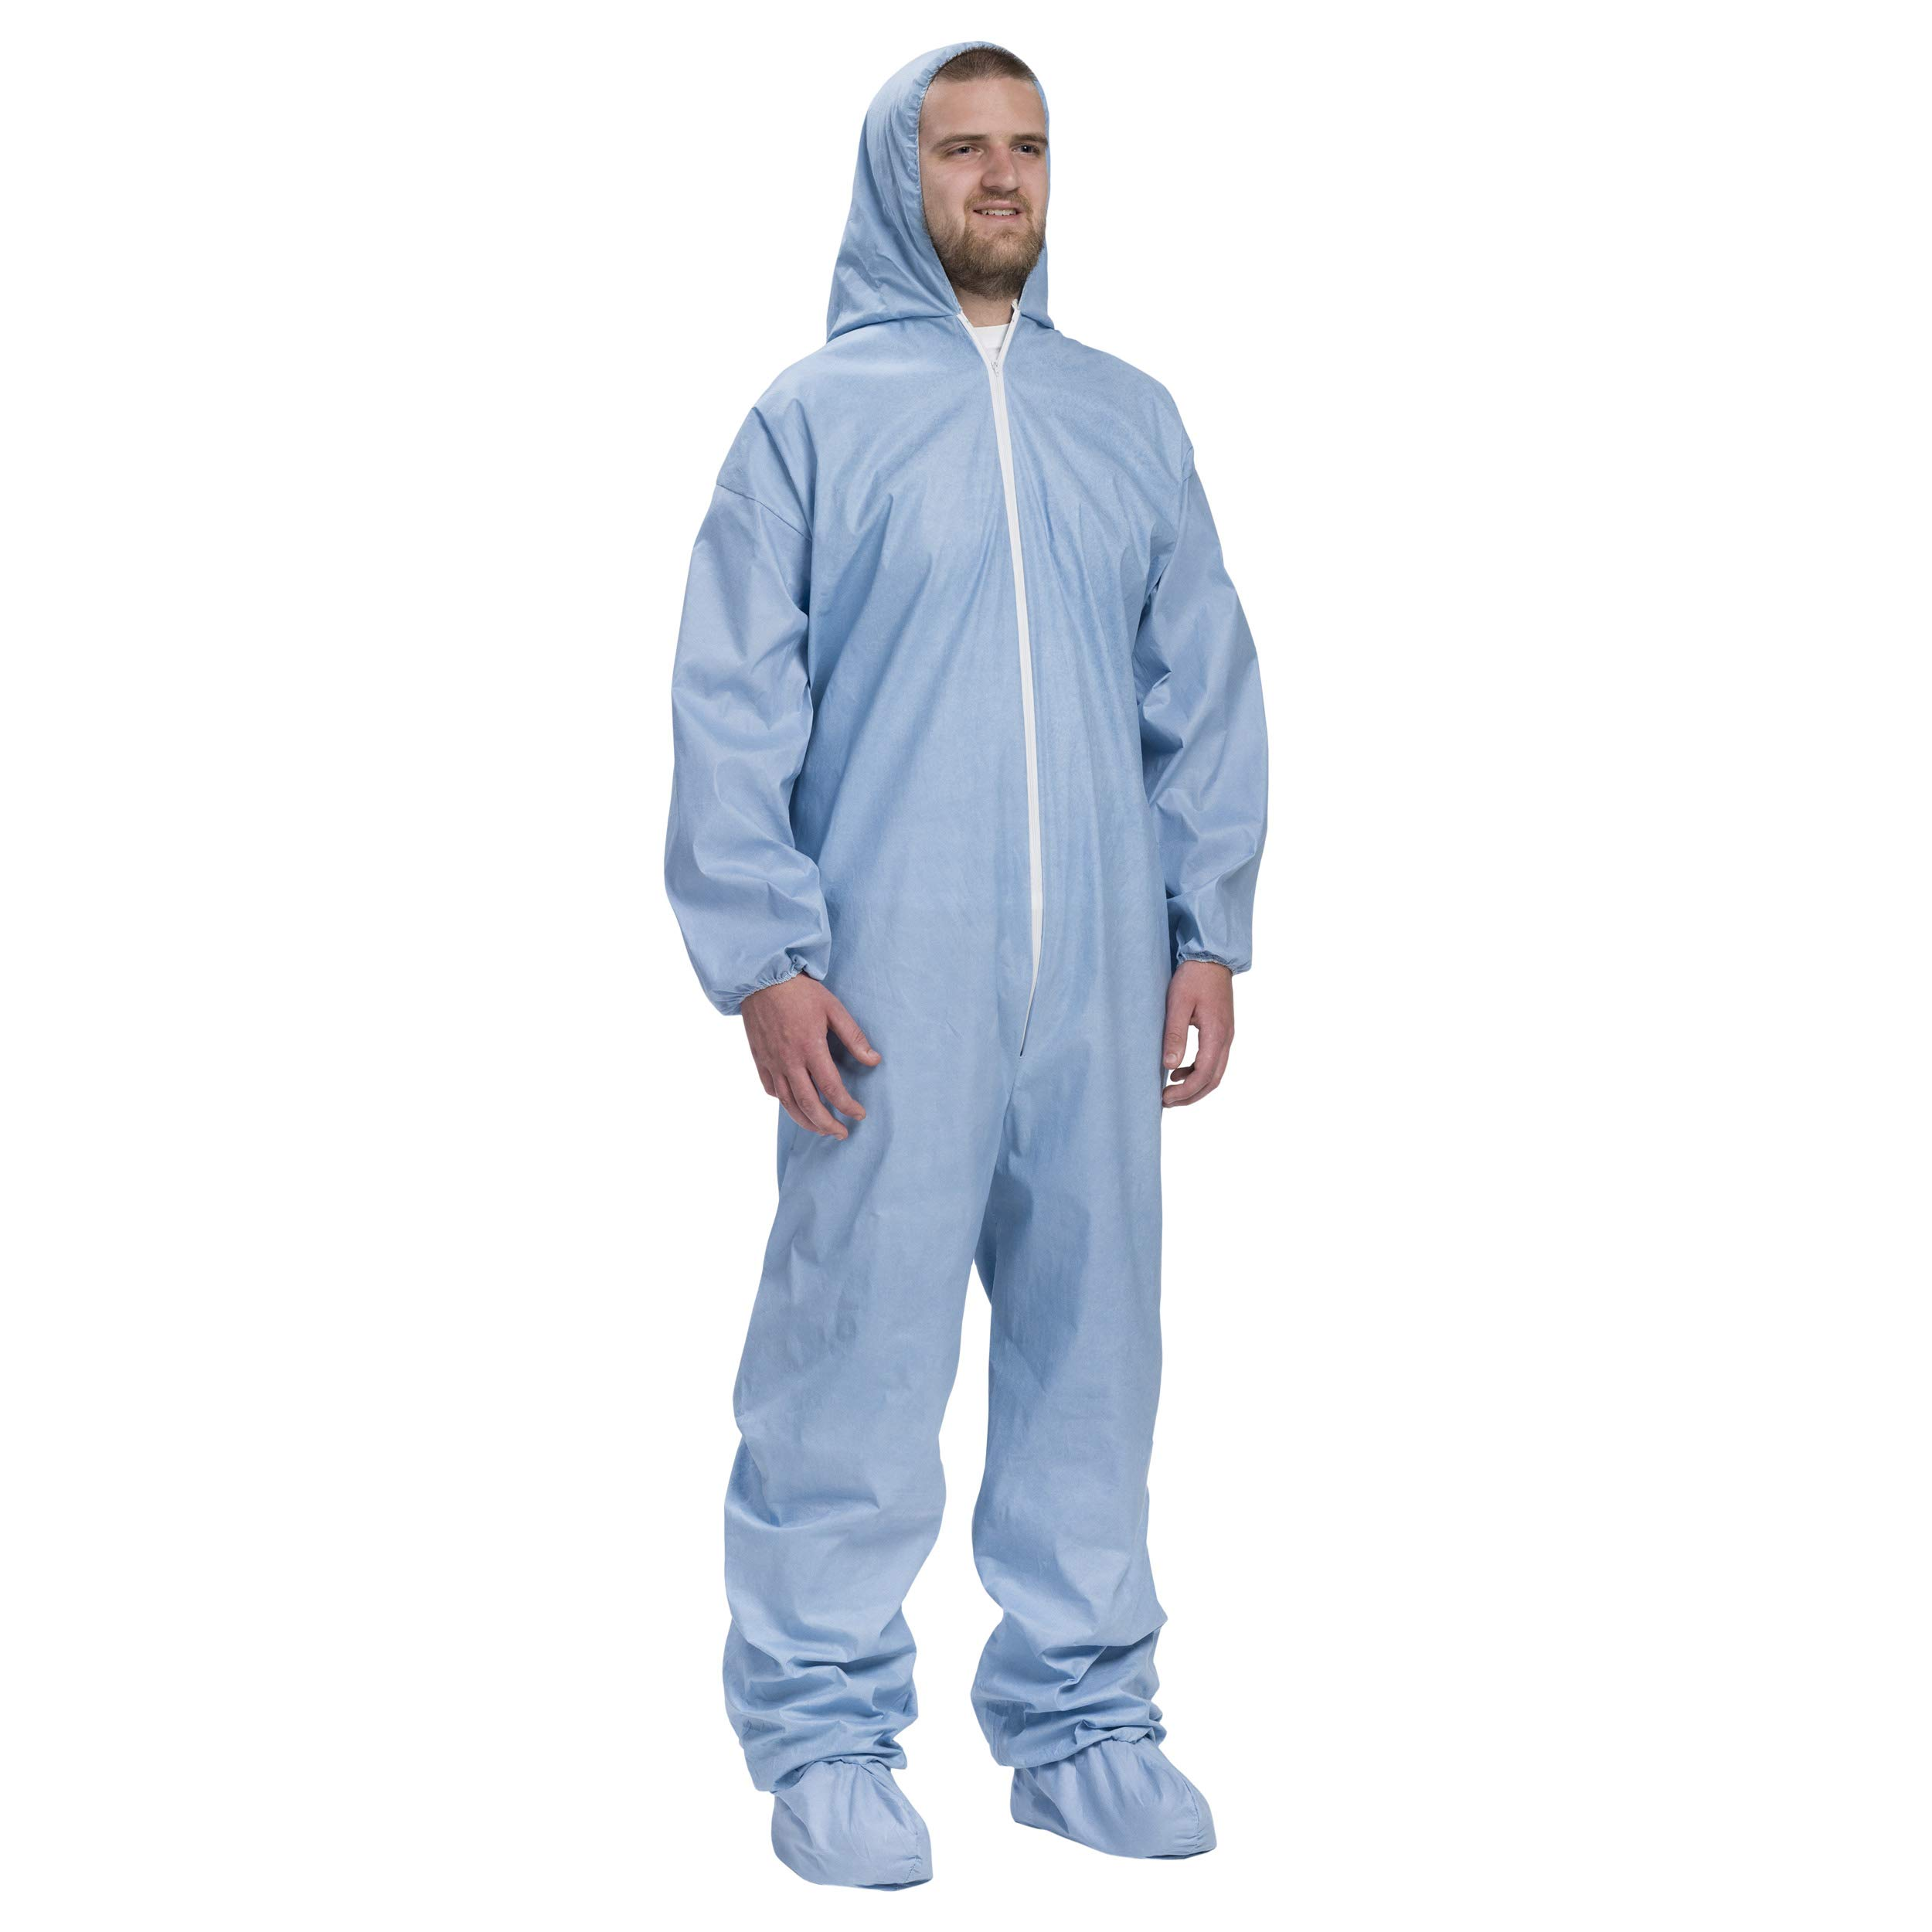 West Chester 3109/XL Posi FR Coverall Hood, Boot, Elastic Wrist & Ankle, XL, Blue (Box of 25) by West Chester (Image #5)